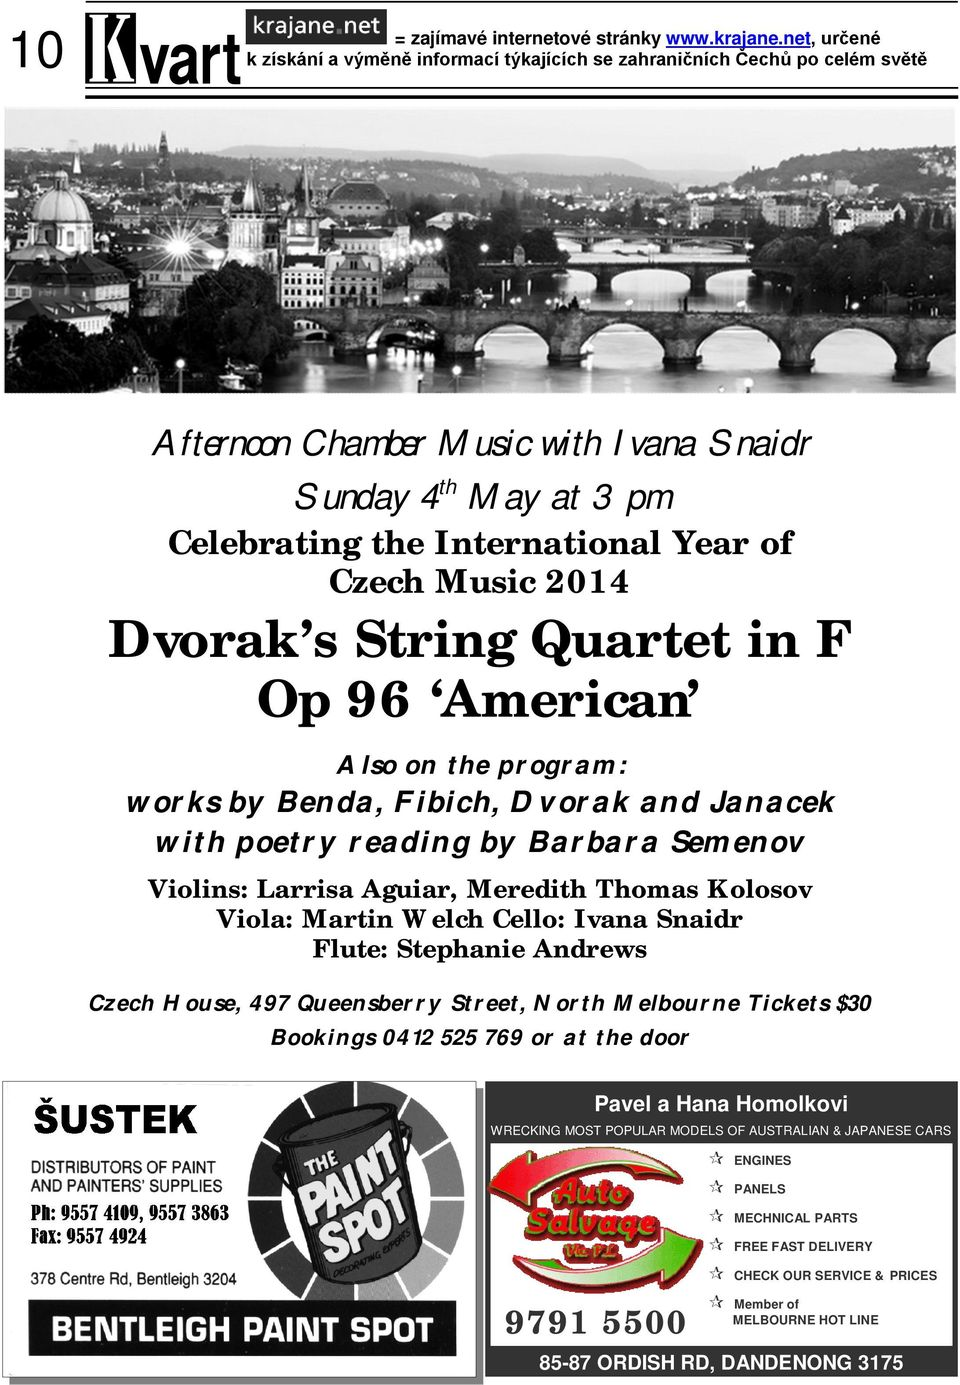 Music 2014 Dvorak s String Quartet in F Op 96 American Also on the program: works by Benda, Fibich, Dvorak and Janacek with poetry reading by Barbara Semenov Violins: Larrisa Aguiar, Meredith Thomas